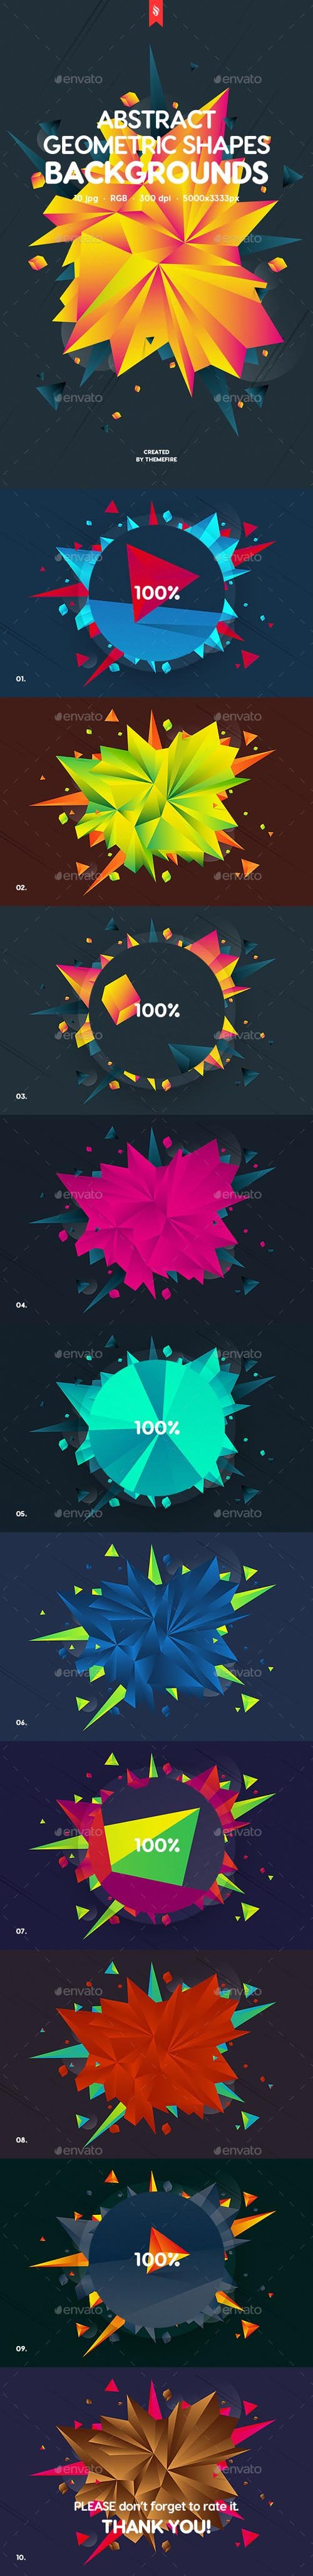 Abstract Geometric Shapes Backgrounds 20286224